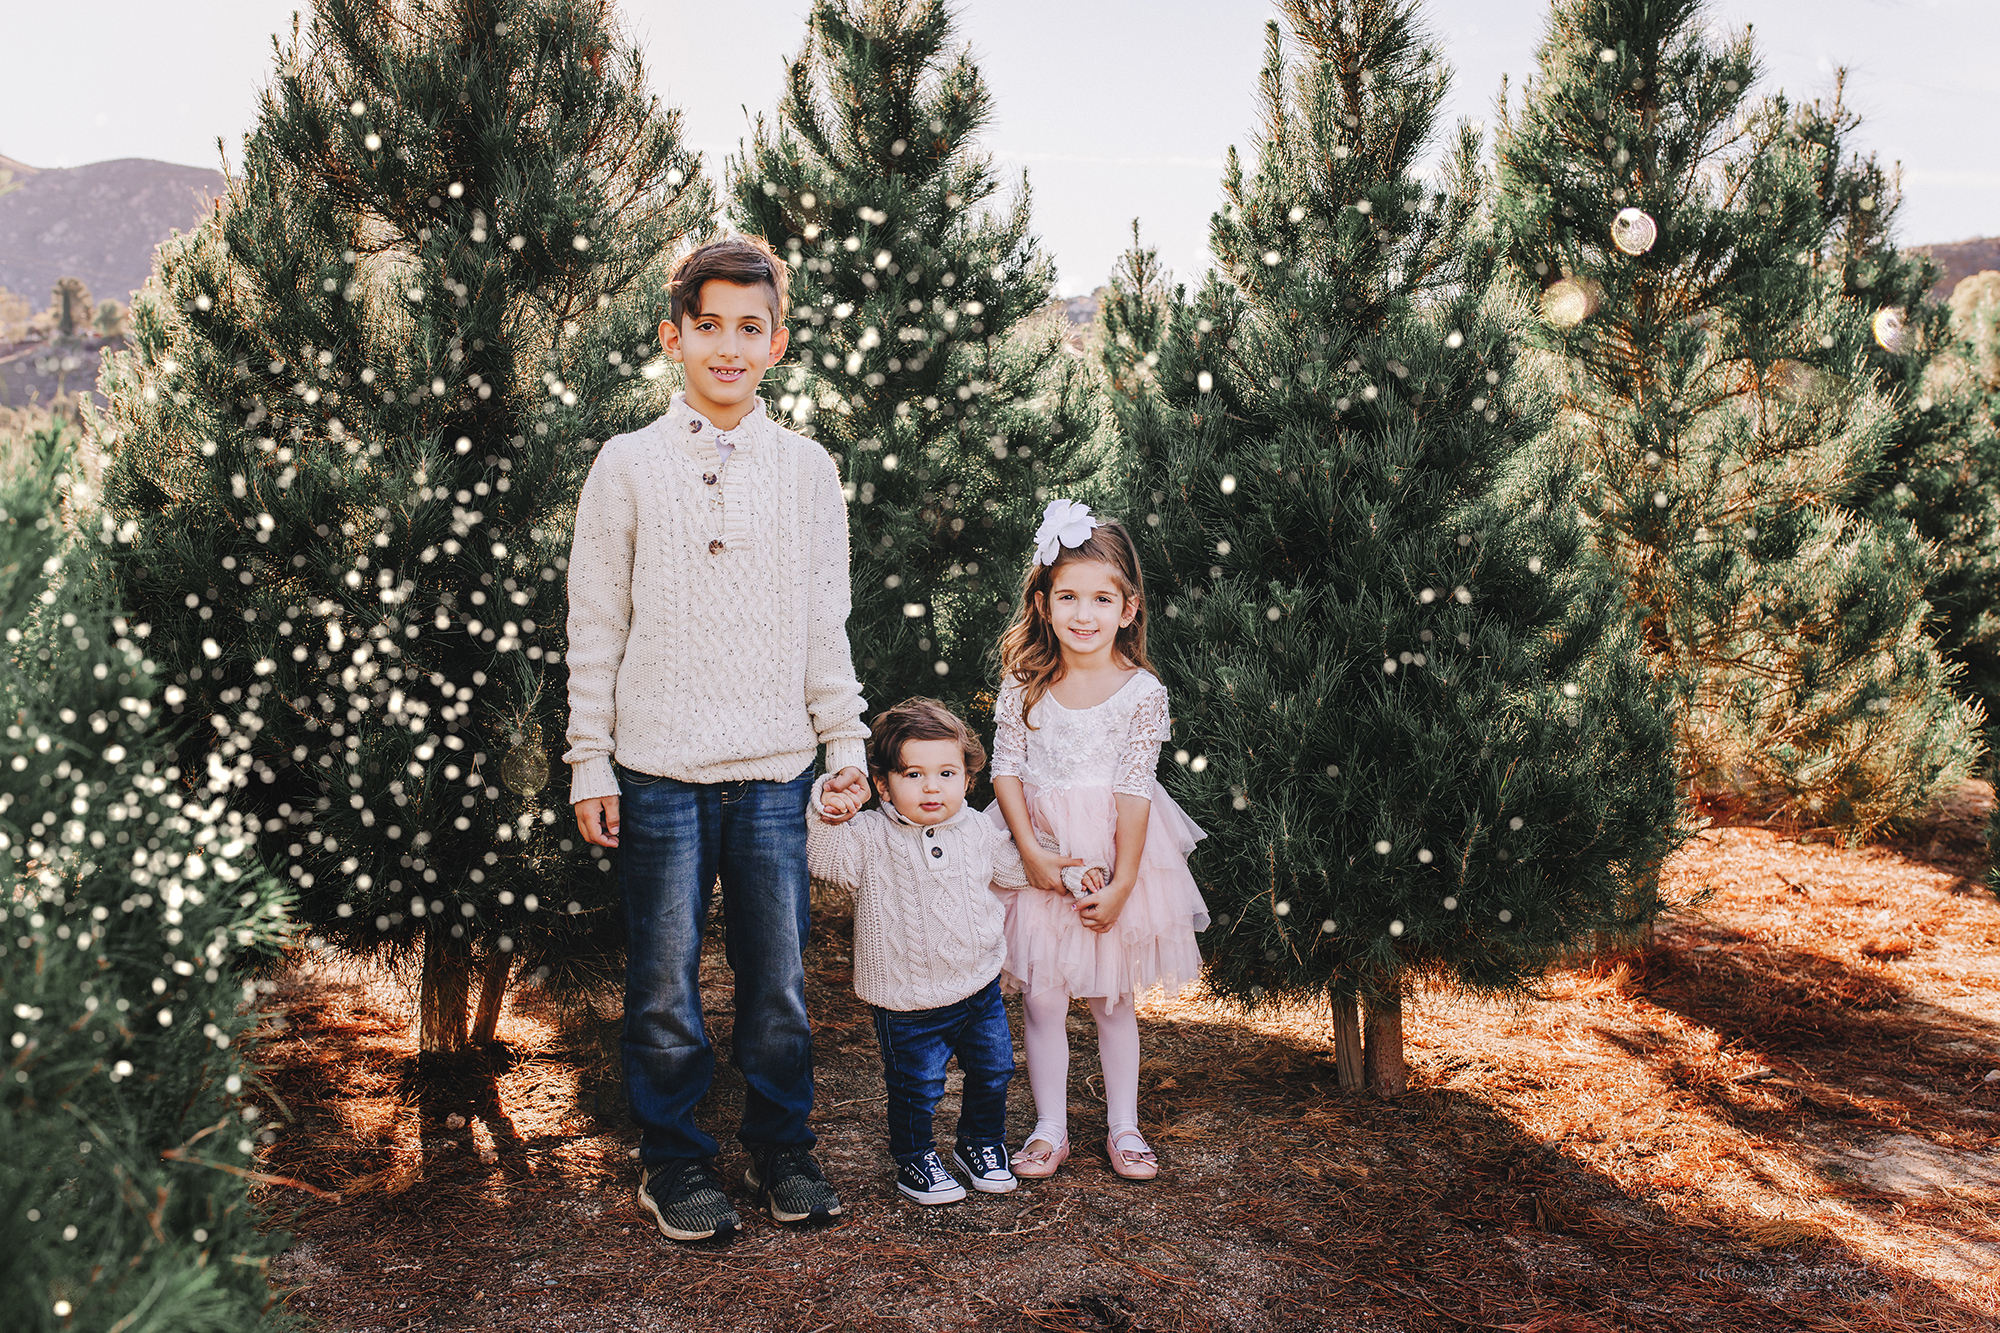 Gorgeous sibling portrait with big brother, Big sister, and Little brother- A Christmas tree farm portrait by Nature's Reward Photography